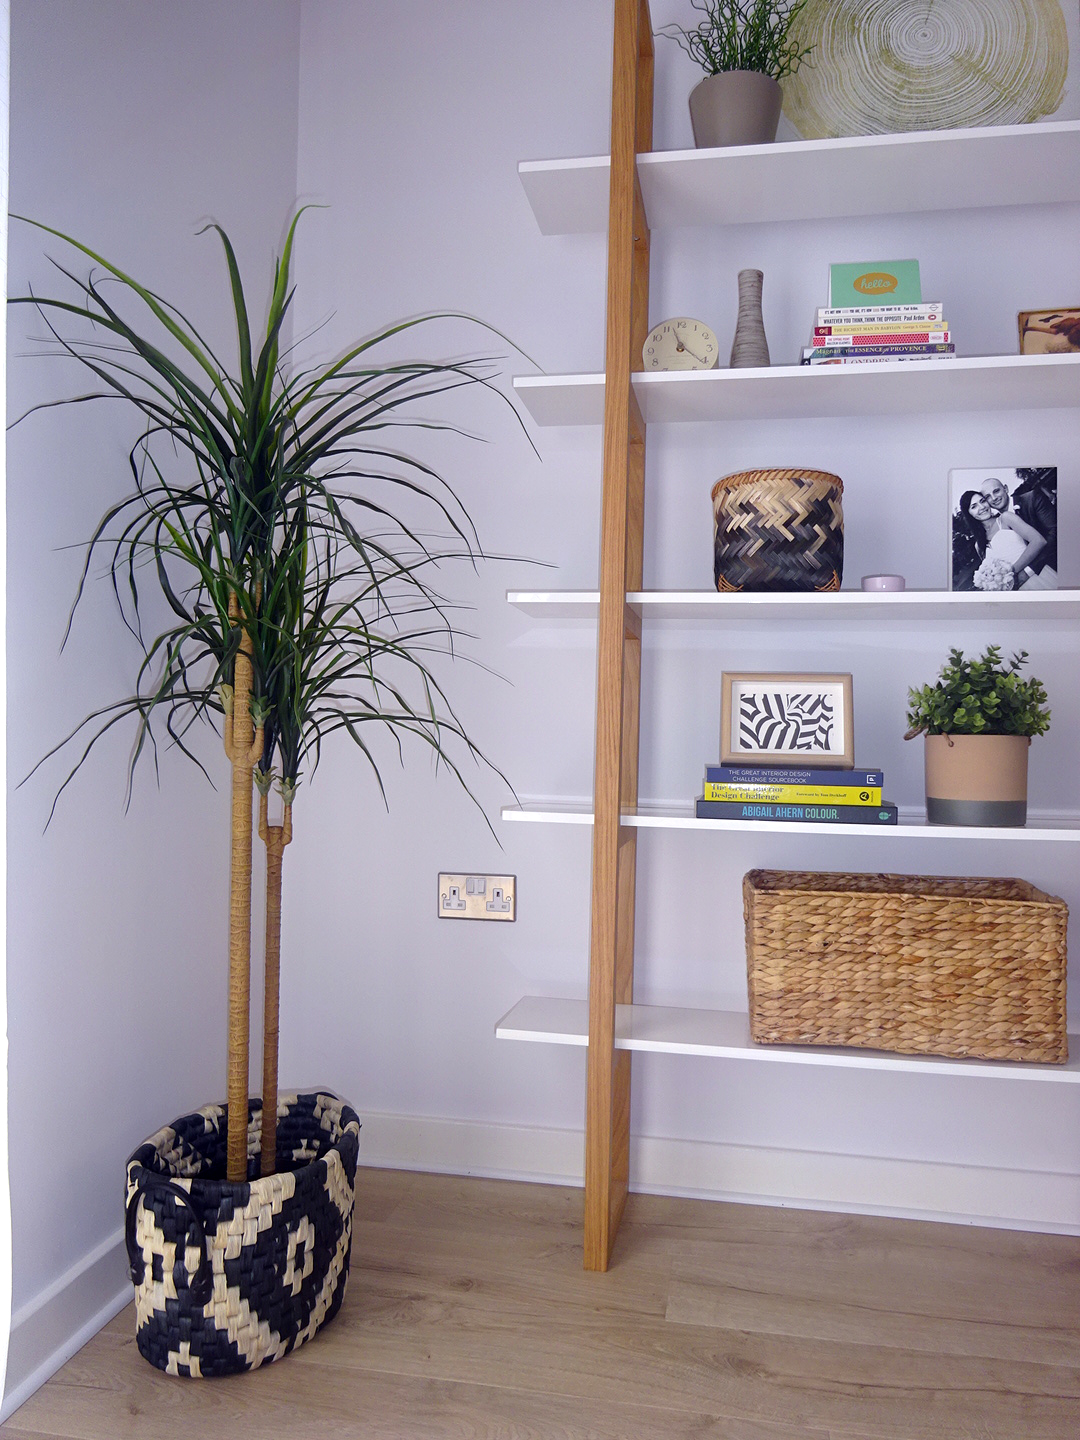 The book shelf & plants style one of the corners of the room.